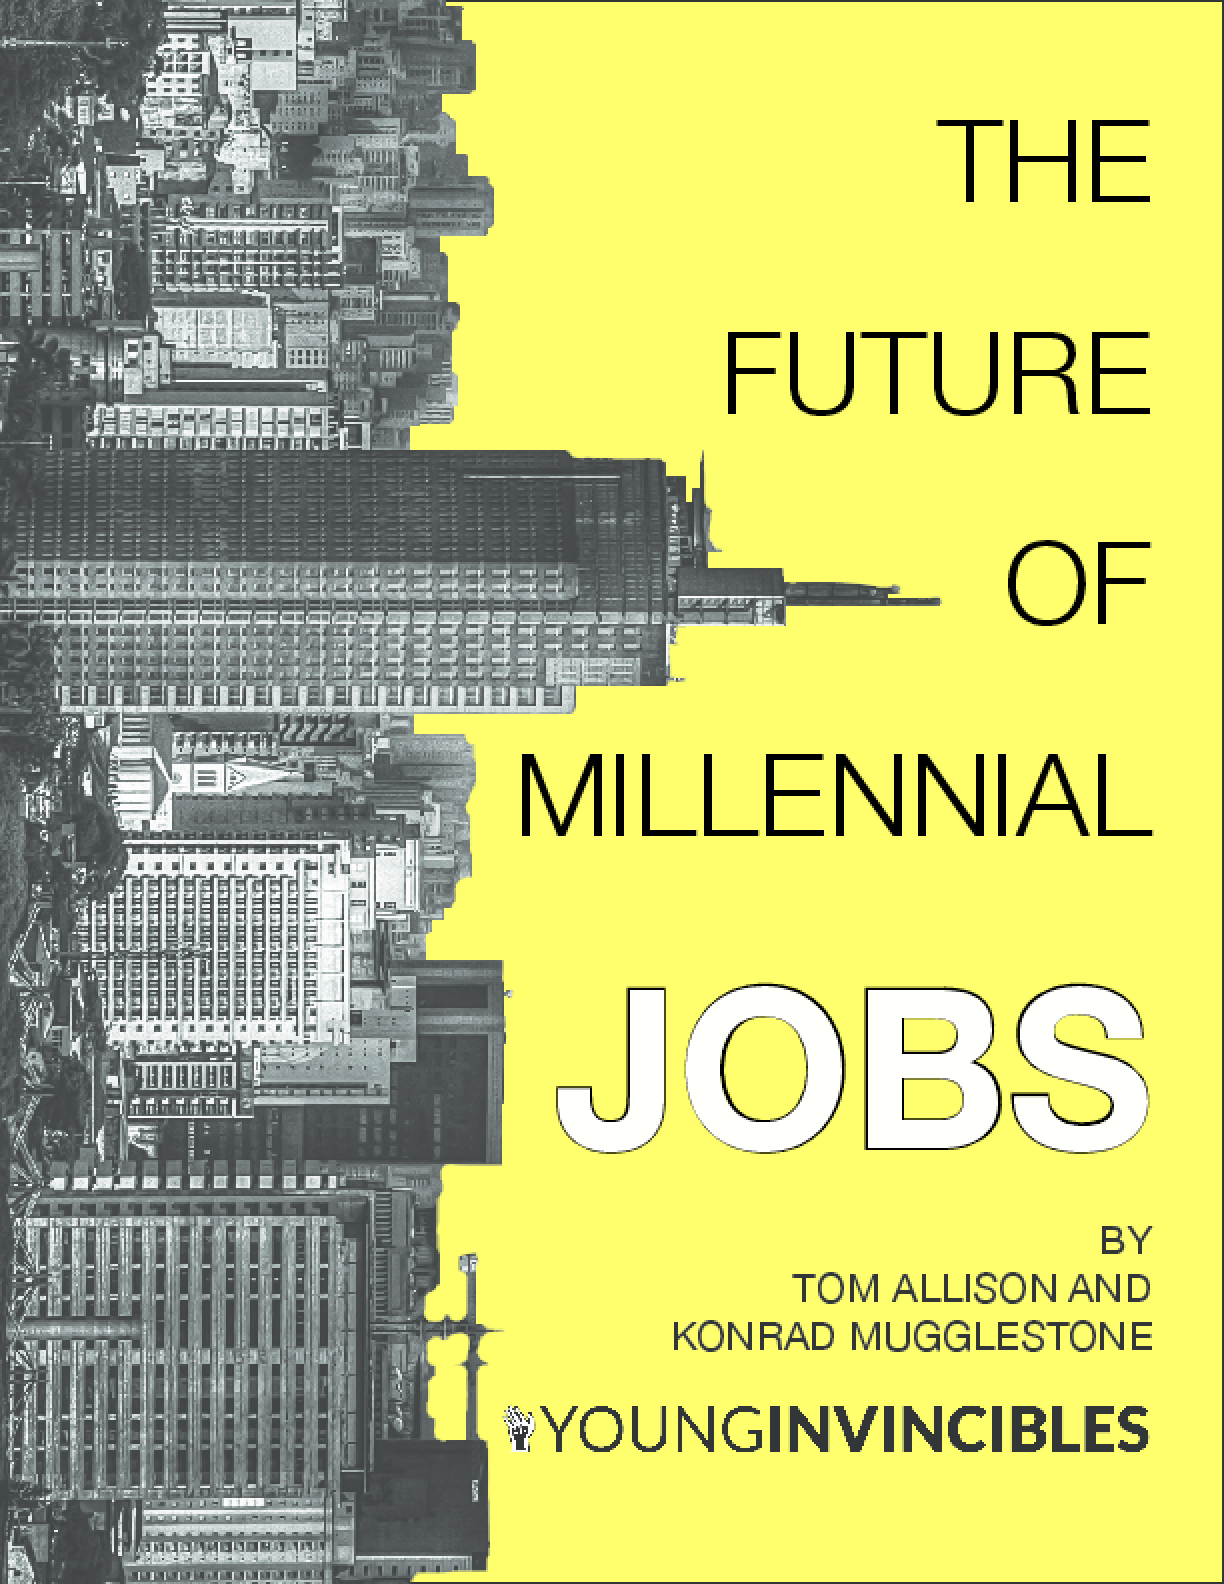 The Future of Millennial Jobs